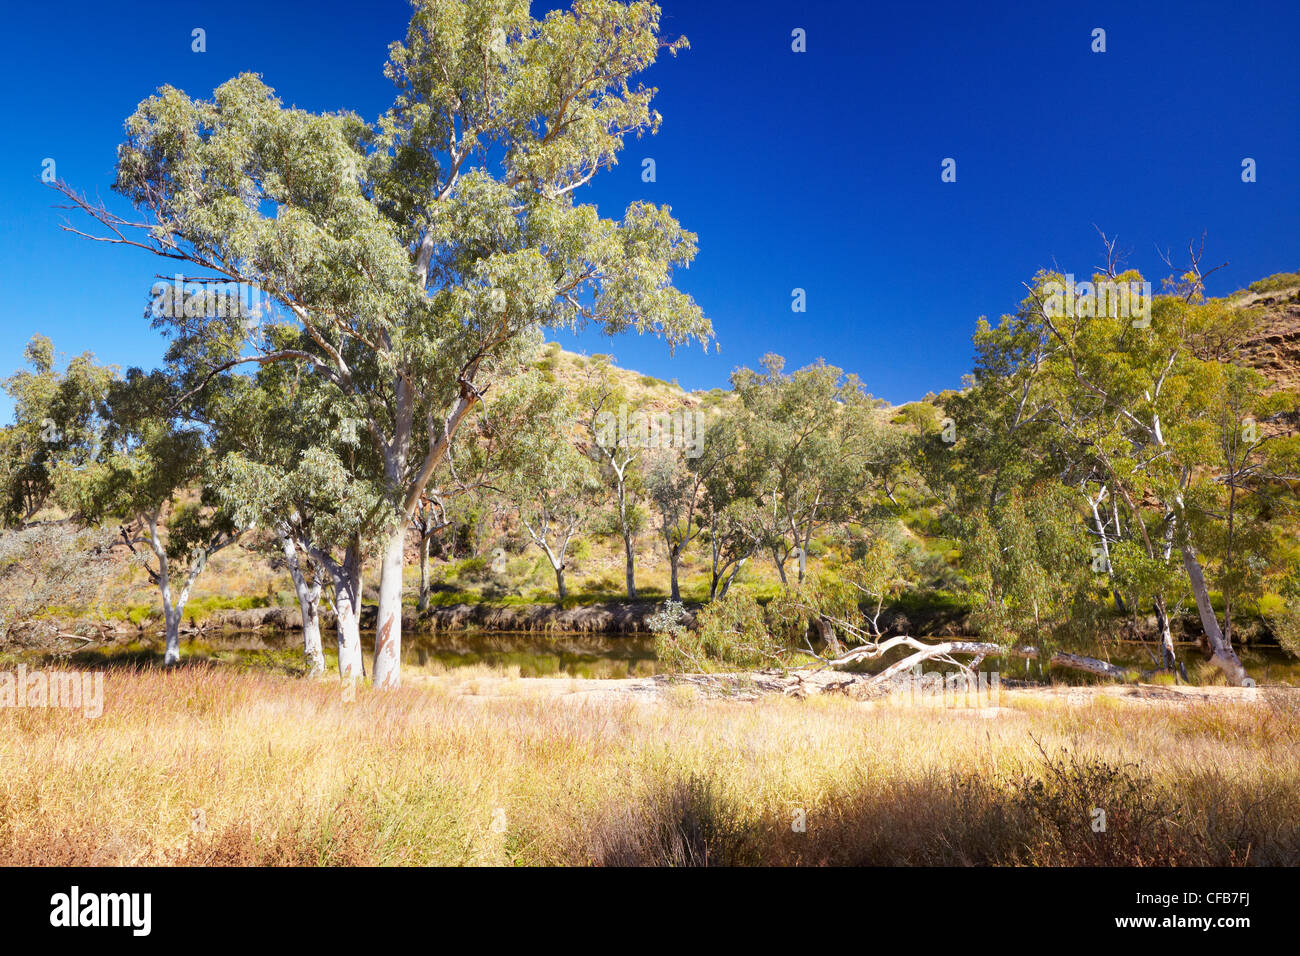 West MacDonnell National Park, Northern Territory, Australia - Stock Image